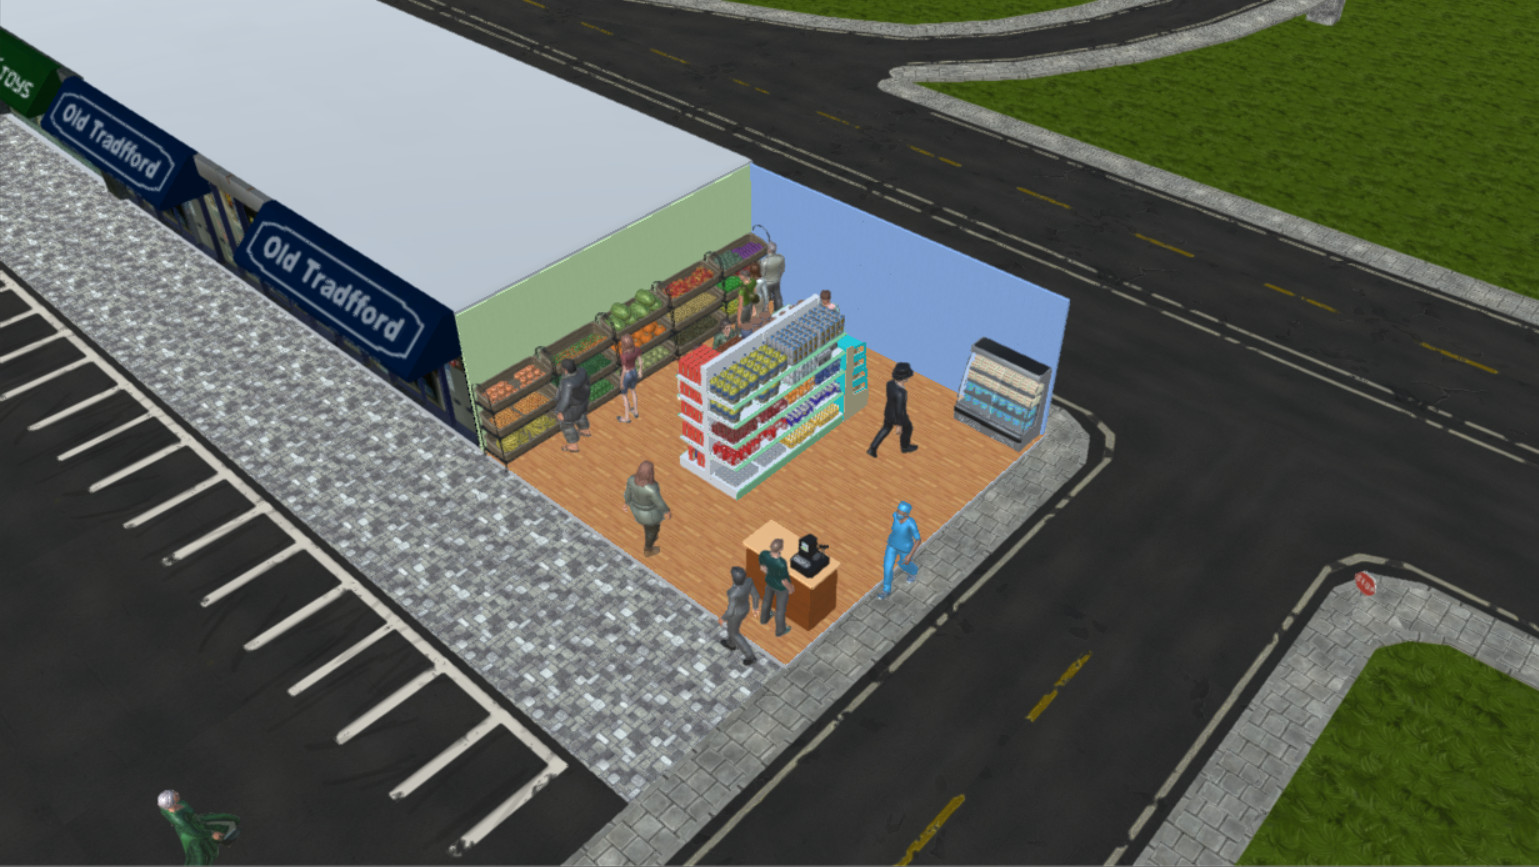 marketplace simulation game reflection Business strategy simulations for educating management and marketing students in global business markets using an intuitive business simulation game.